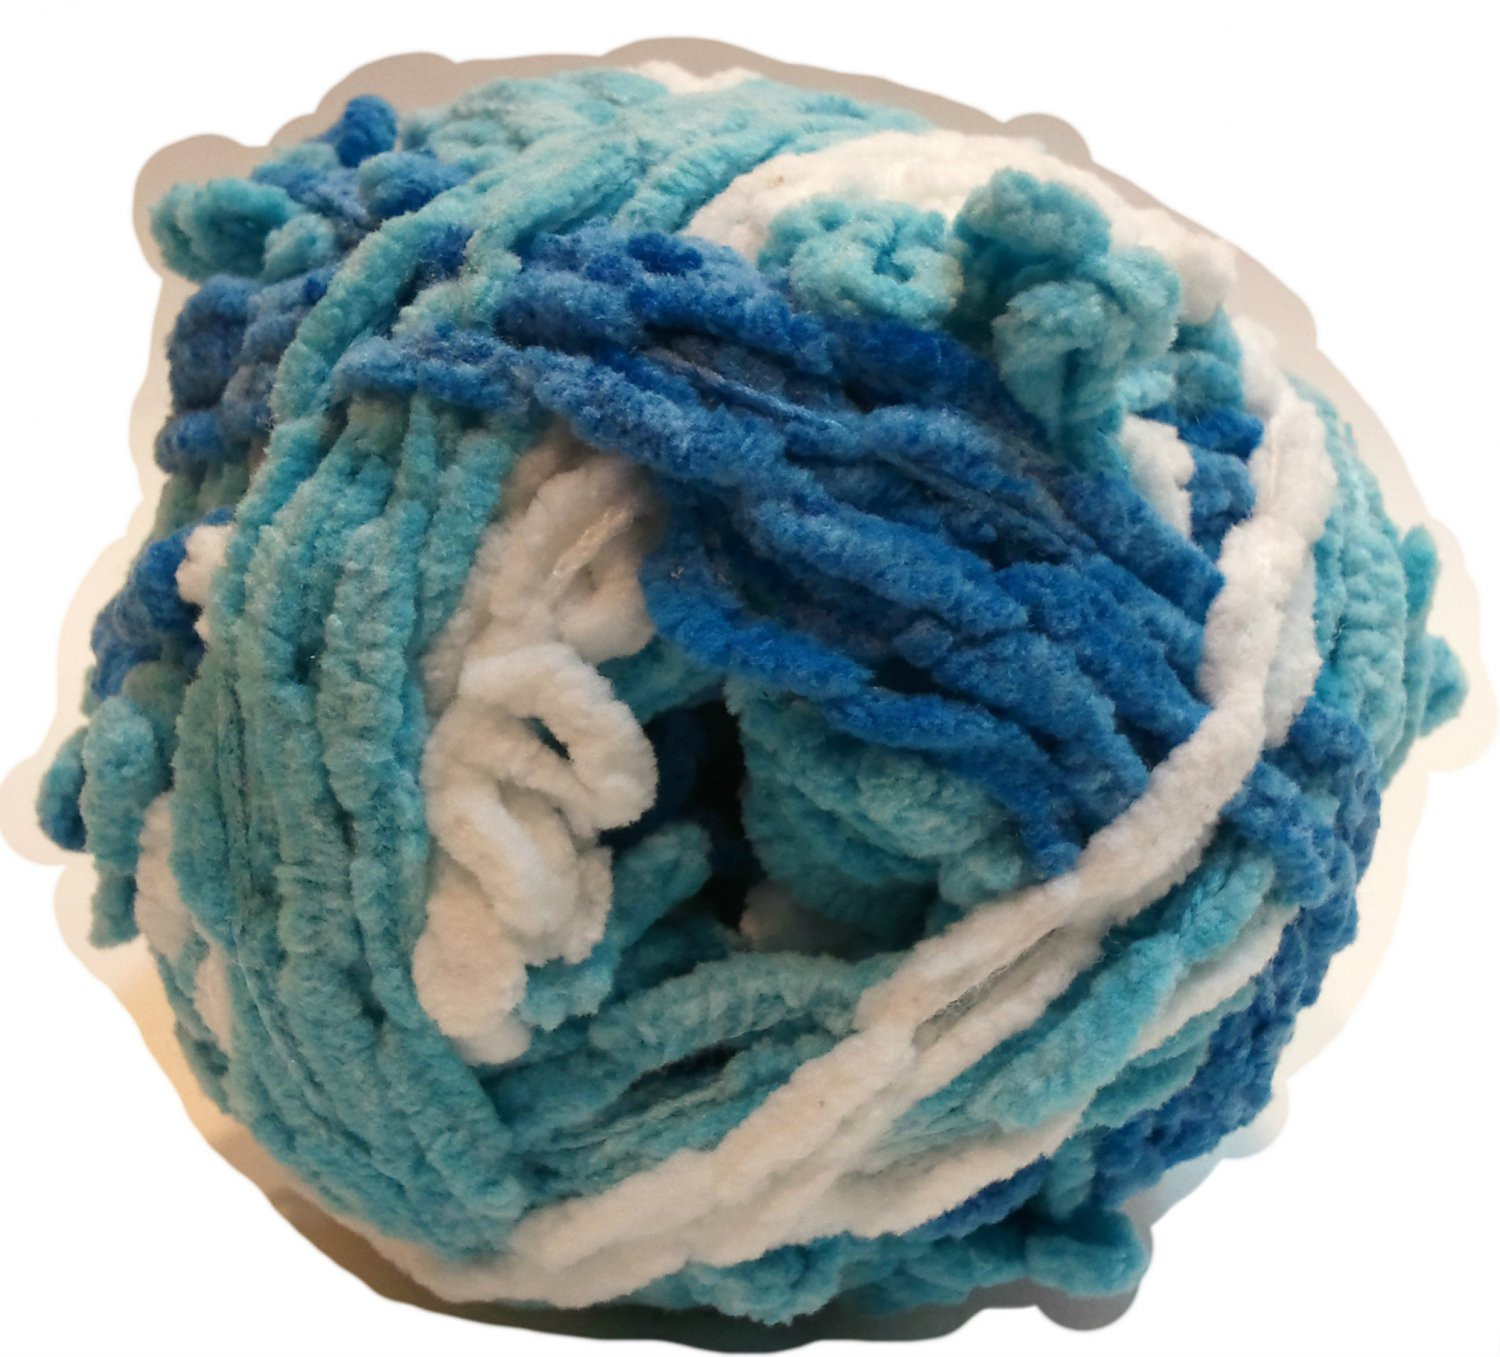 Lolli Loopy Chenille Yarn Icing 9989 Red Heart 3.5 ounces 80 yards Super Bulky 6 Blue Aqua White